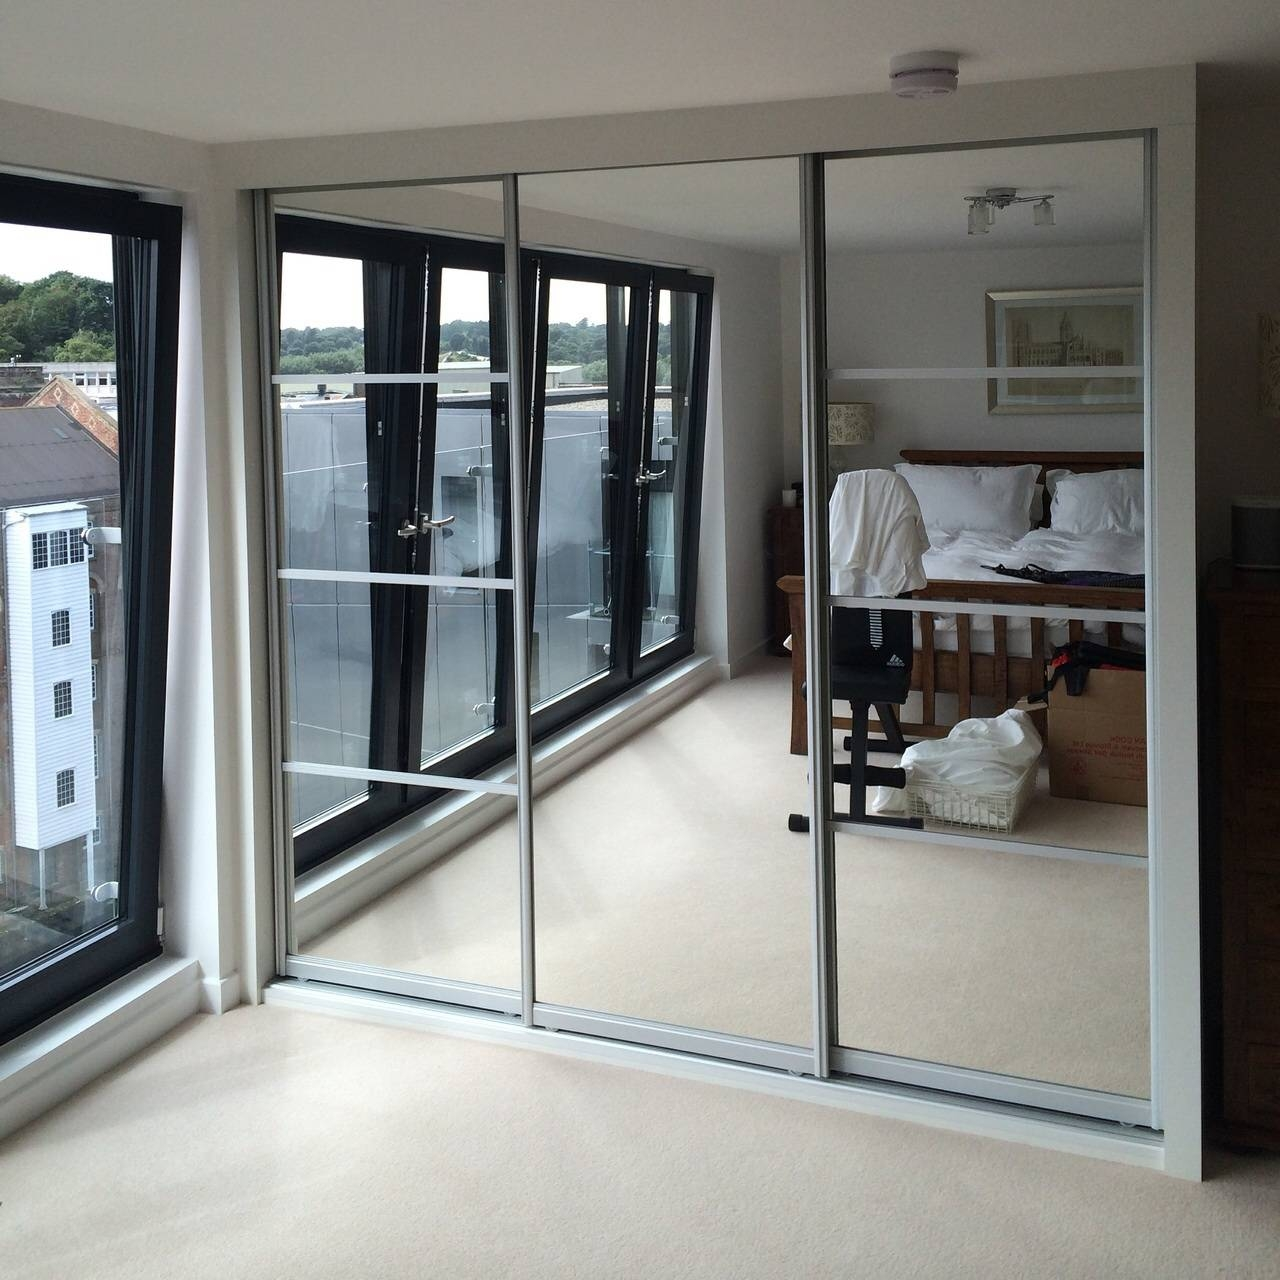 Mirrored Wardrobes: Bring Light And Space To Your Bedroom with Mirrored Wardrobes (Image 10 of 15)